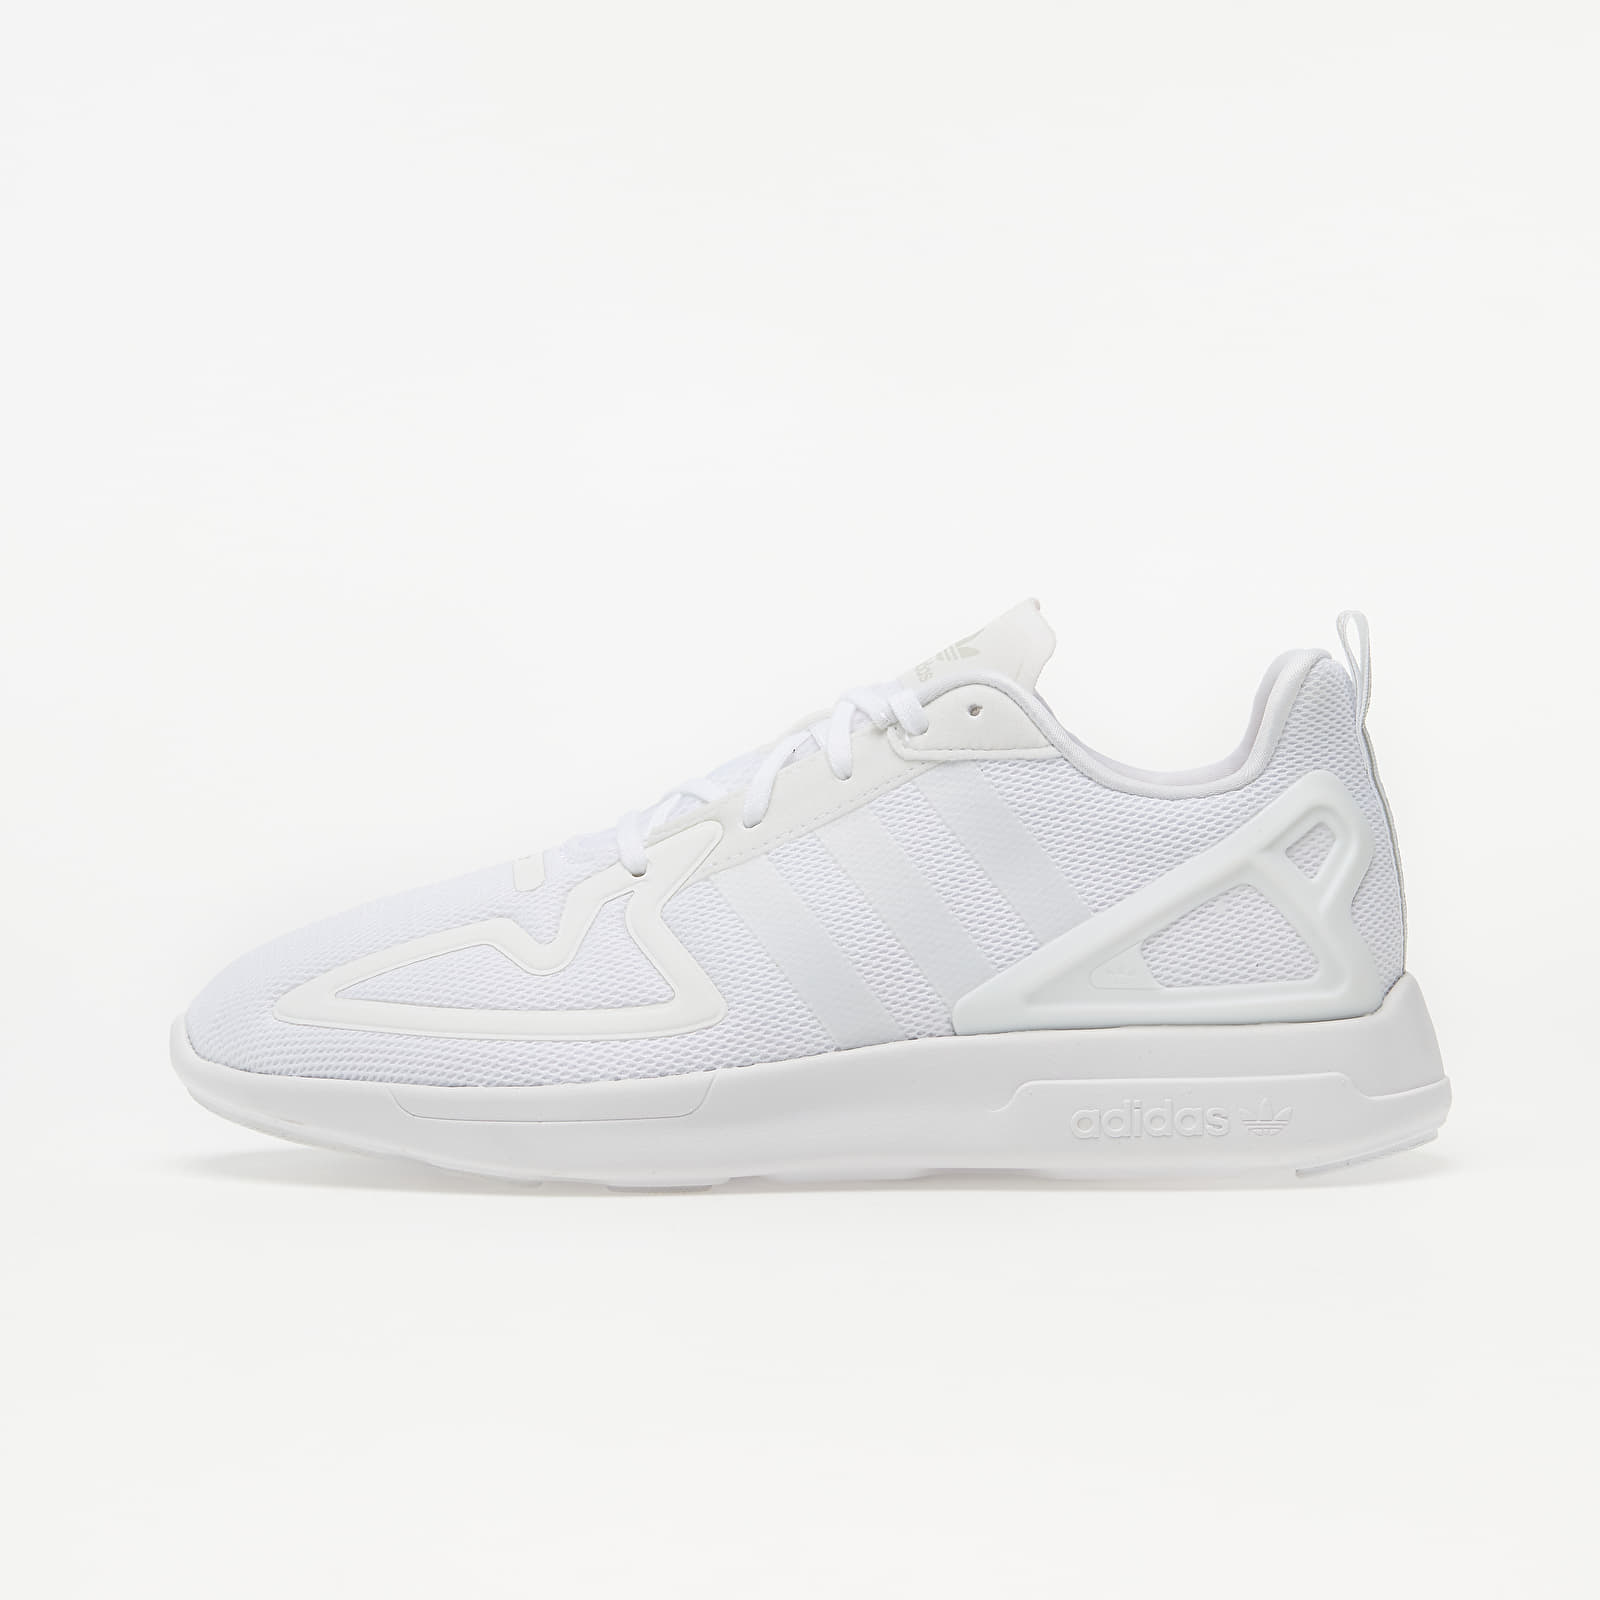 Men's shoes adidas ZX 2K Flux Ftw White/ Ftw White/ Grey One